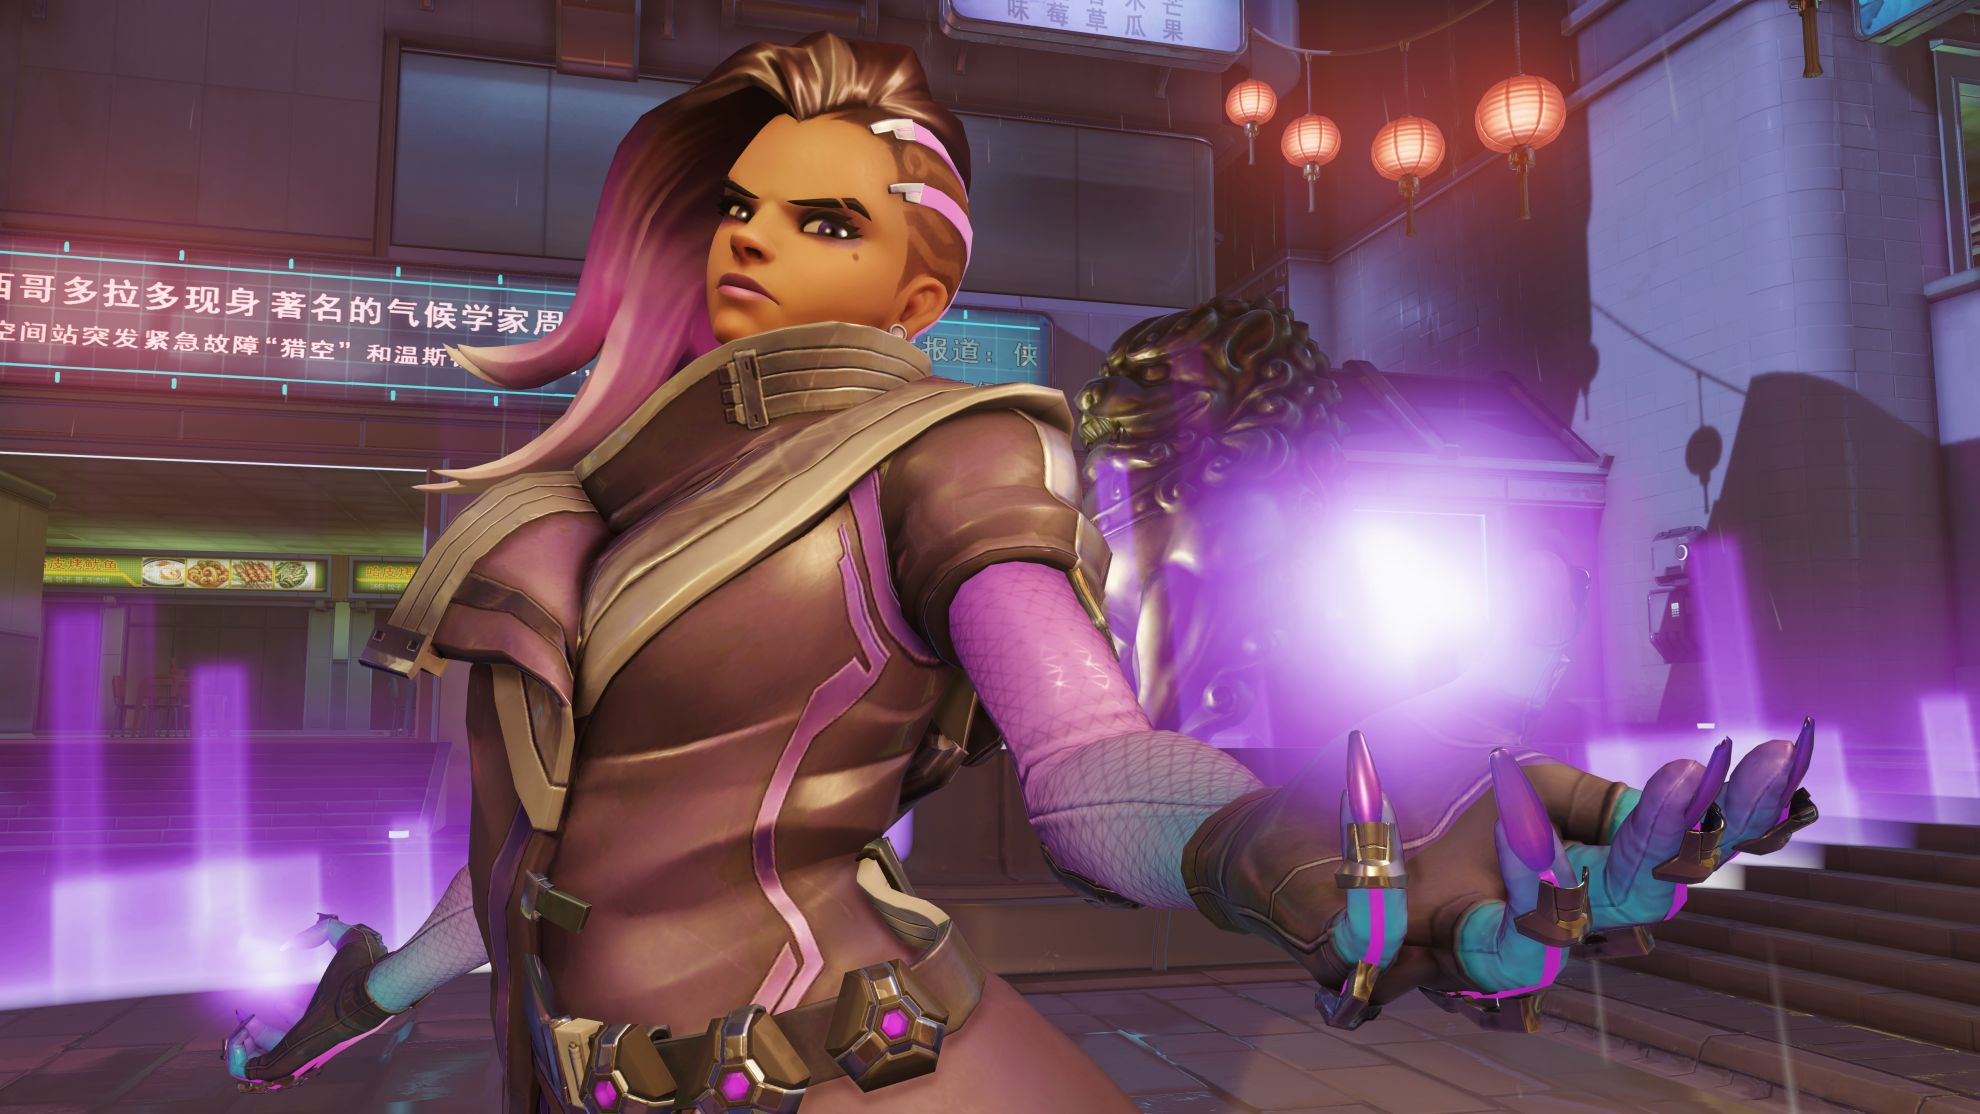 Overwatchs Sombra Comes To Street Fighter 5 Courtesy Of A